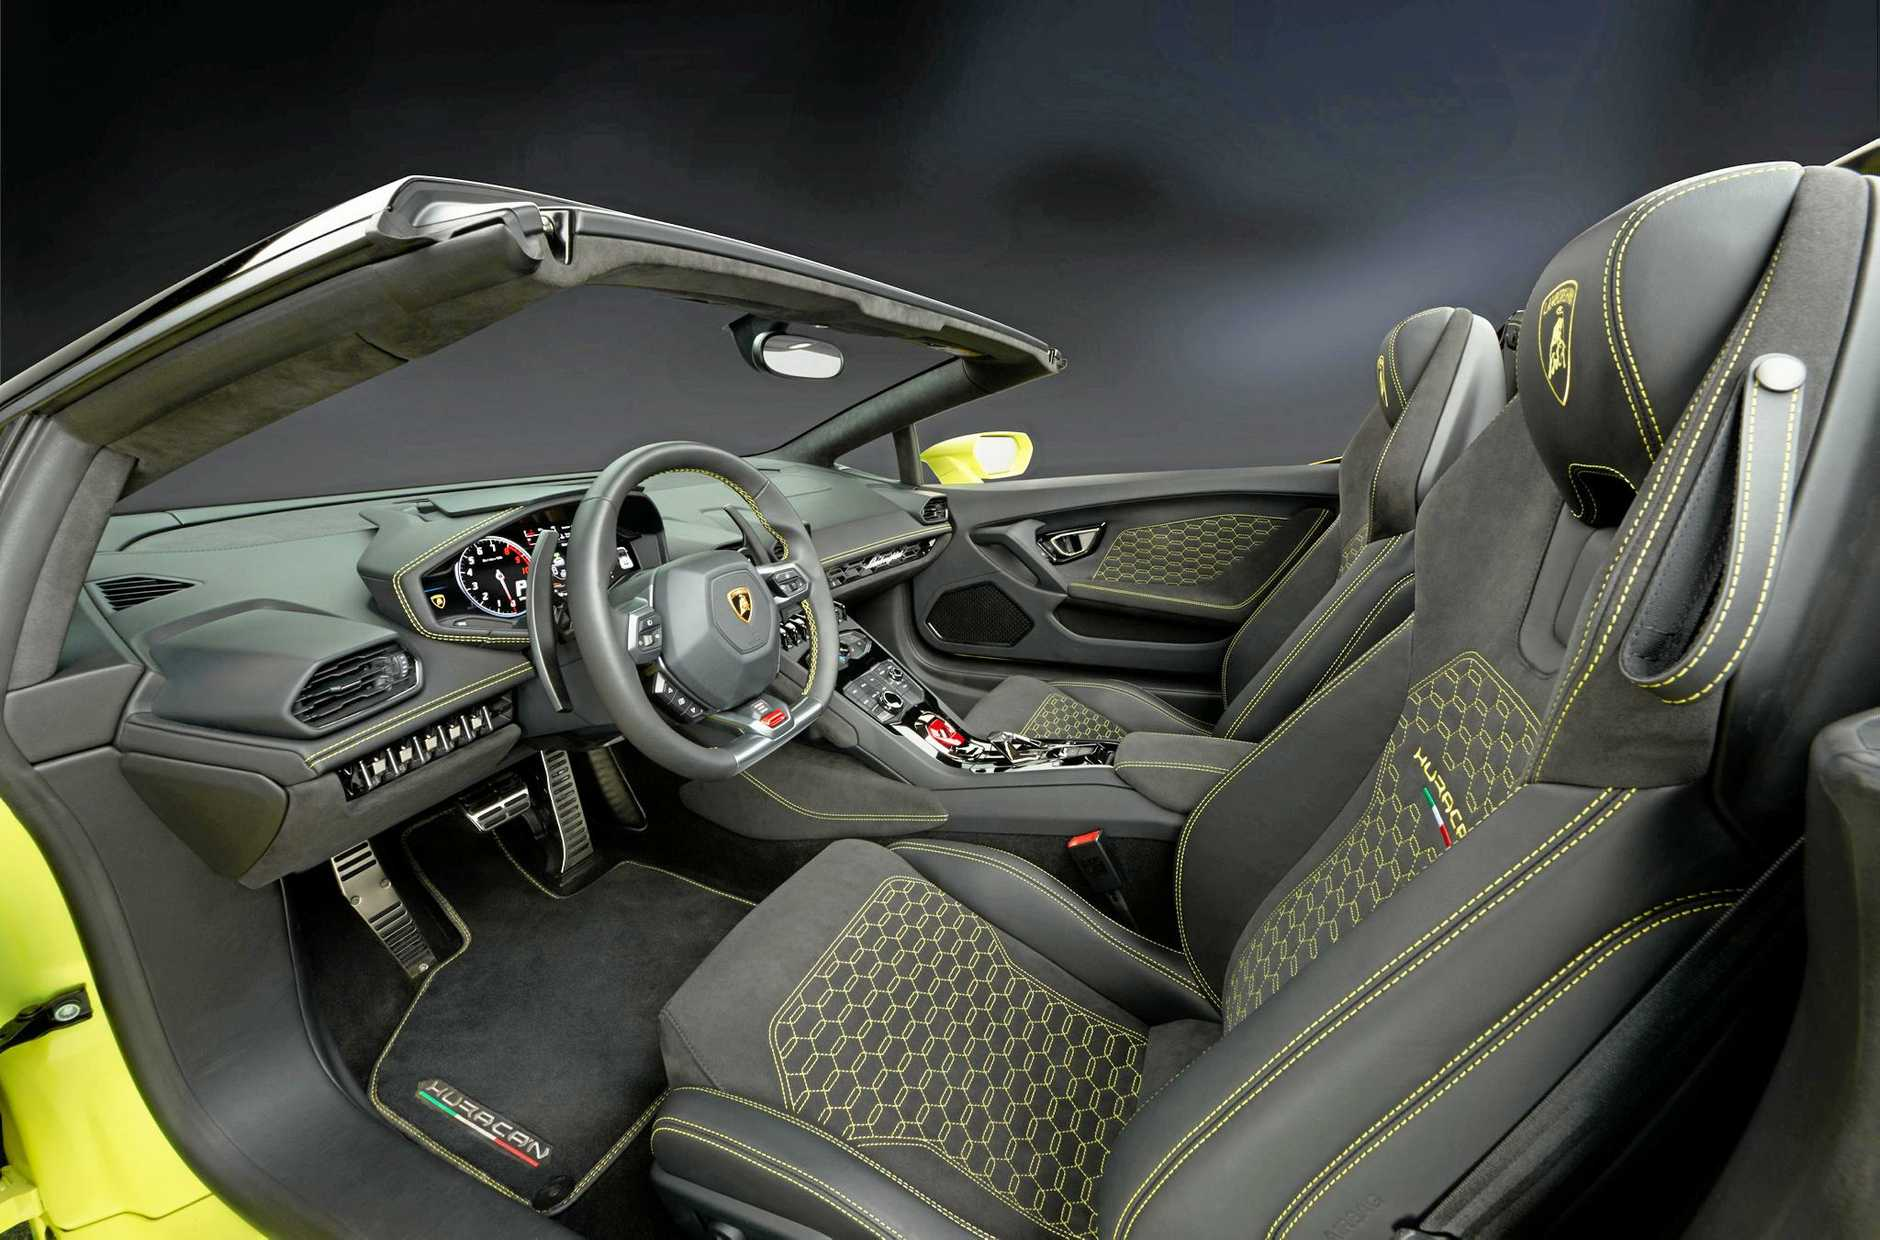 Inside the Lamborghini Huracán rear-wheel drive Spyder.